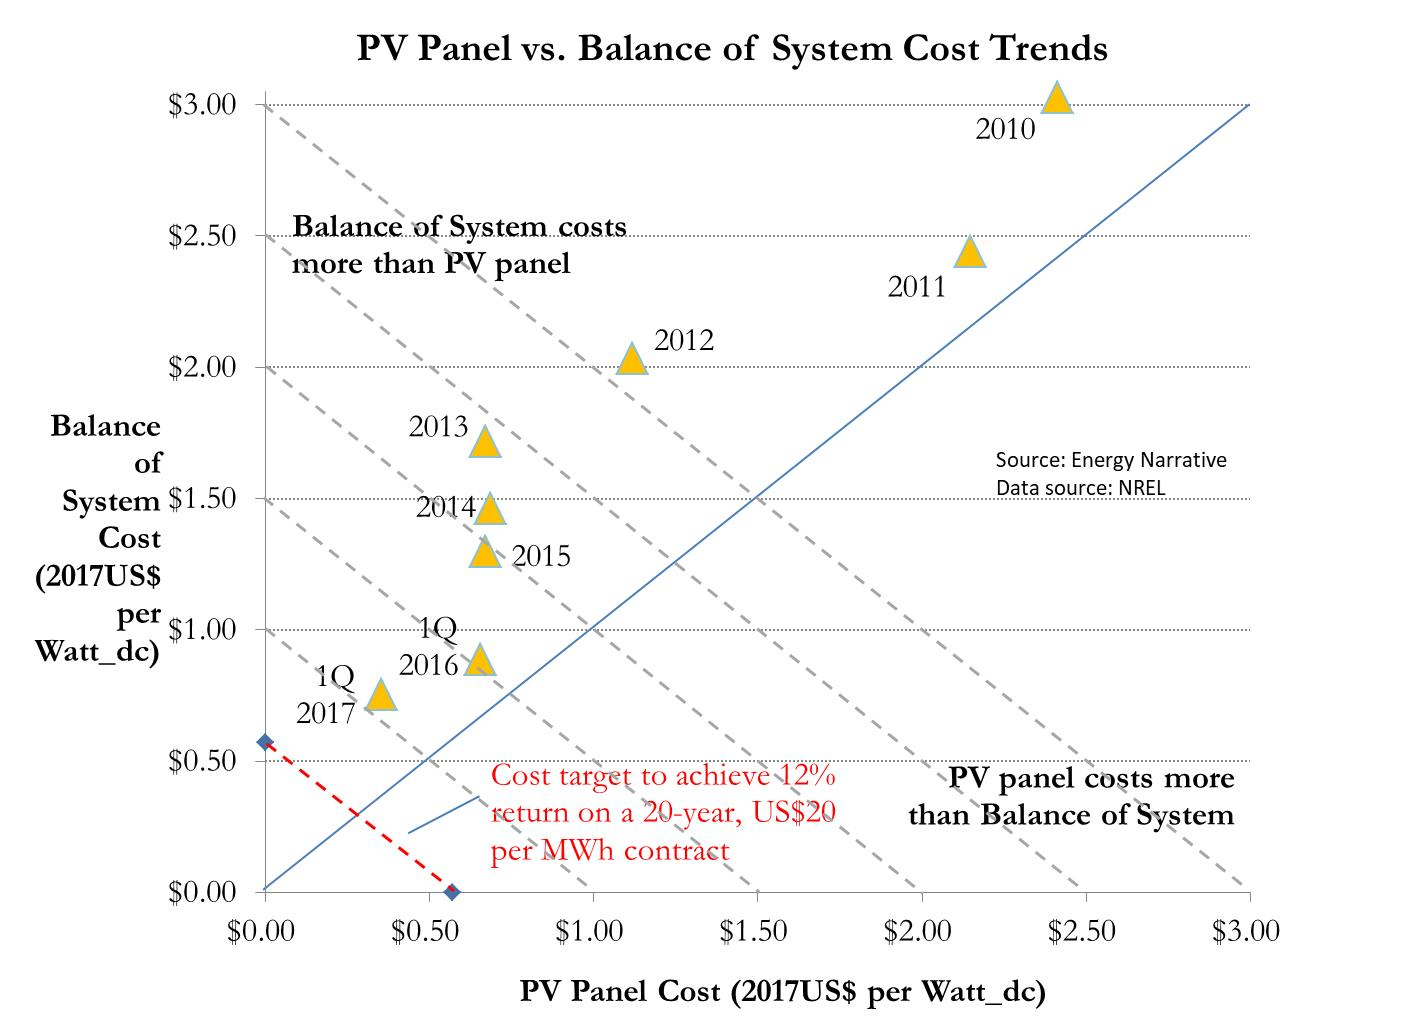 A graphic comparing historical U.S. average utility-scale single-axis tracker PV panel and balance of system costs, 2010-2017